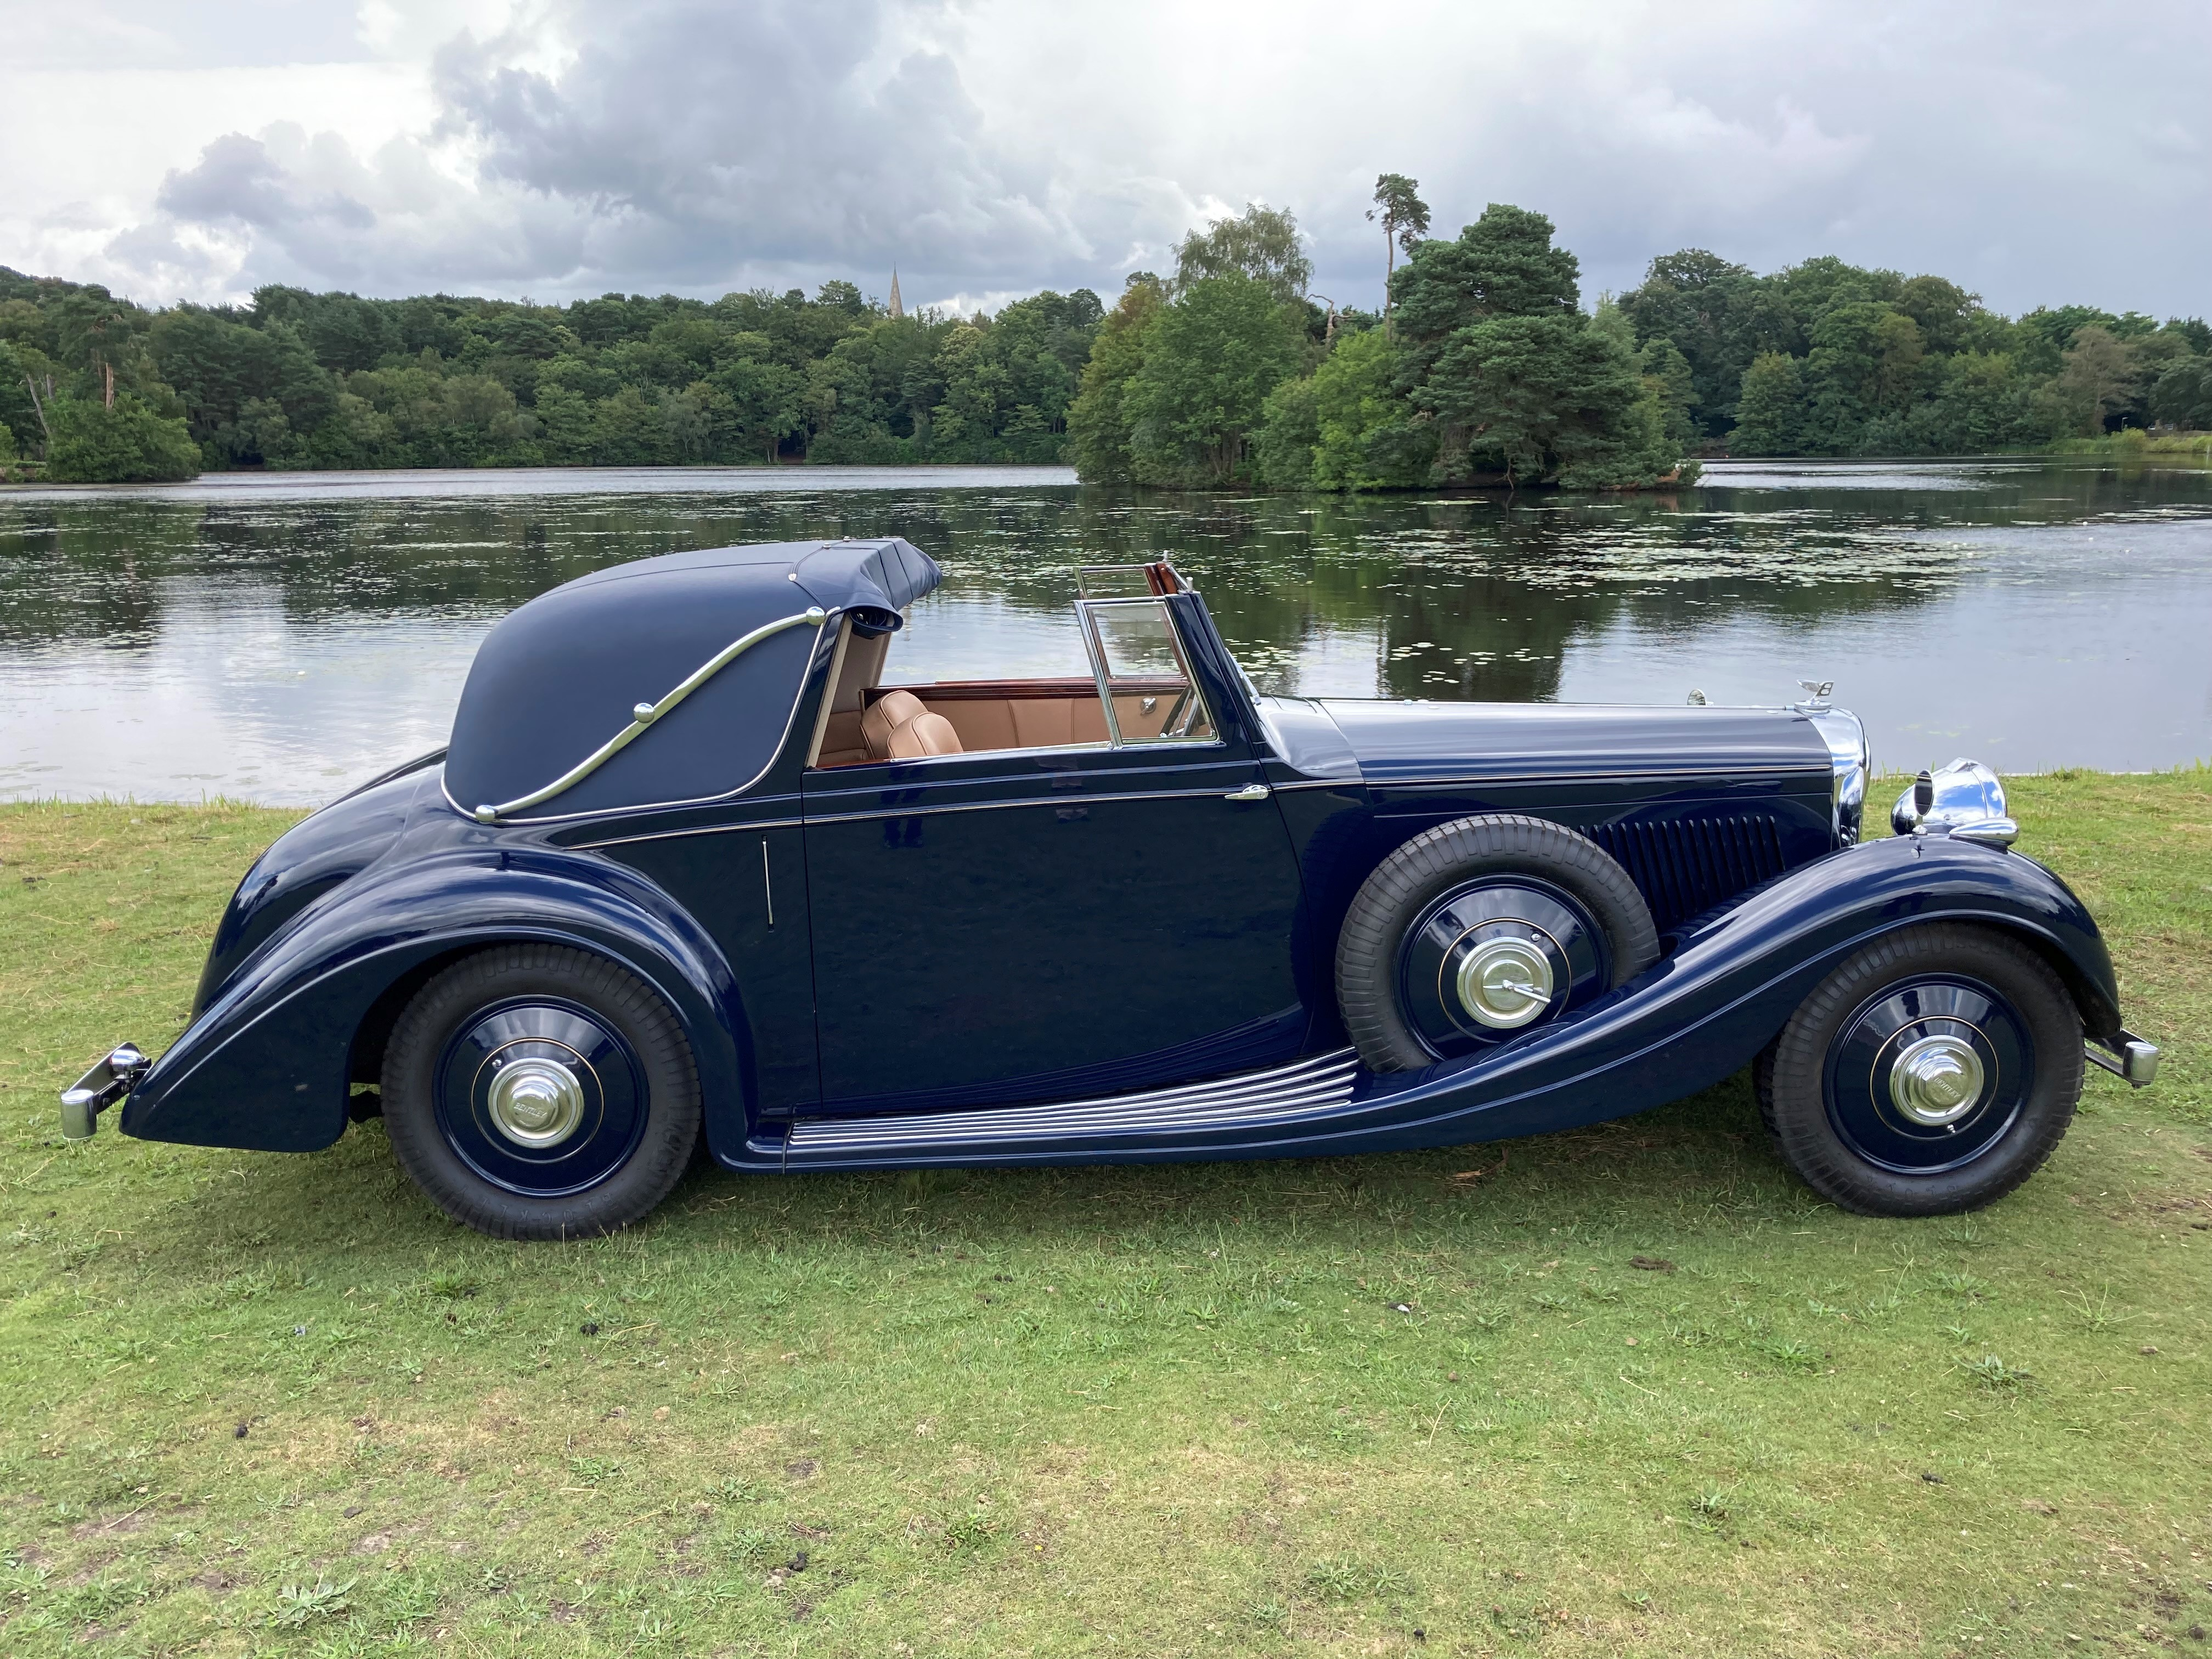 1937 Bentley 4 1/4 Litre Sedanca Coupe by Gurney Nutting